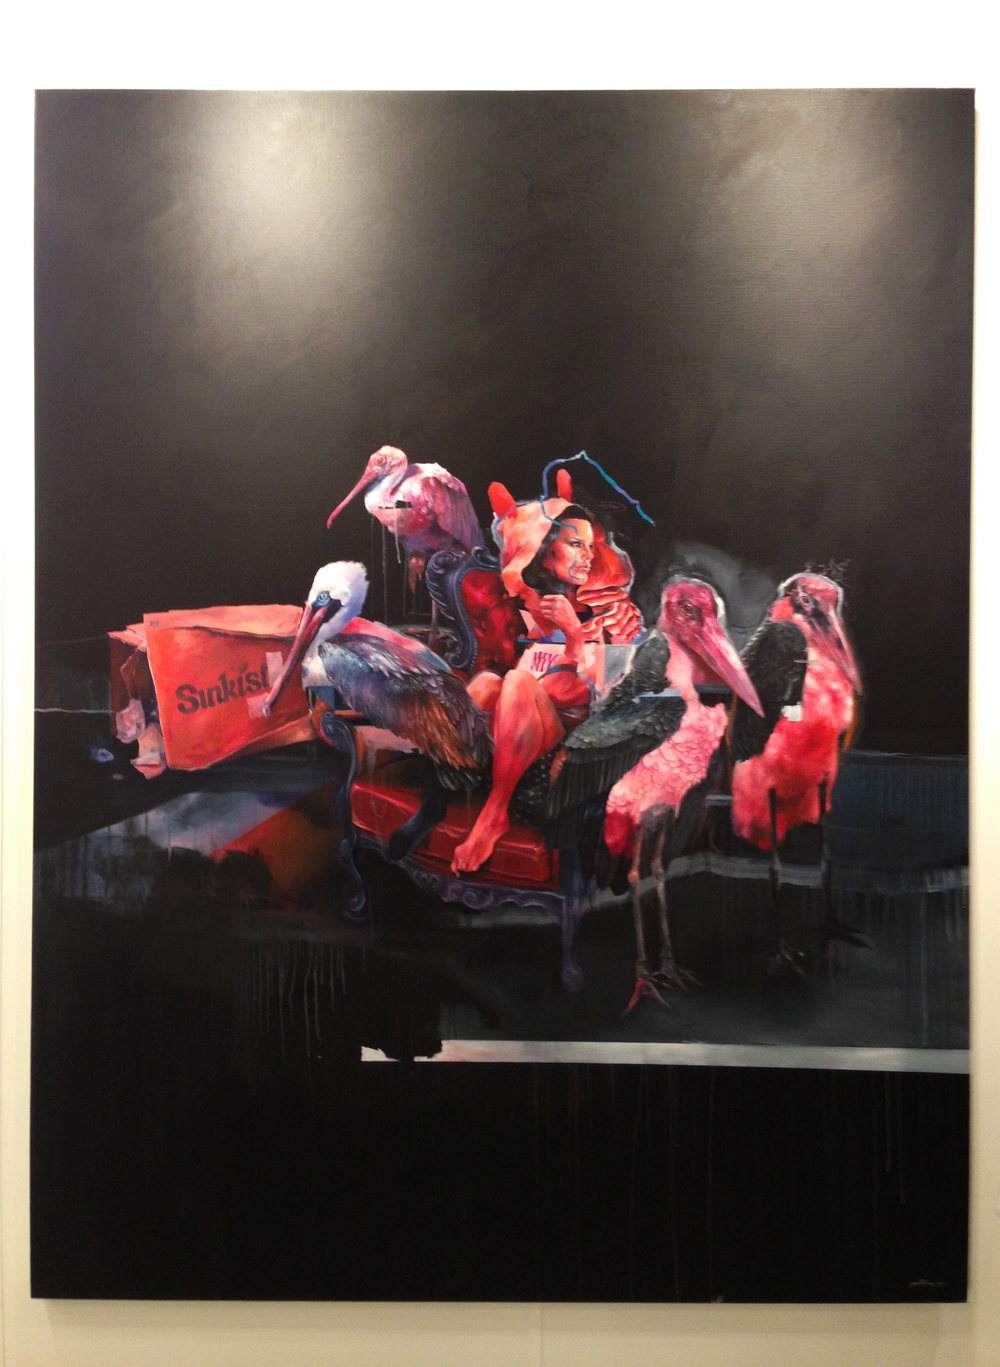 """8.  """"Justine Never Knew the Rules (1979)"""", 2013,Joram Roukes -  Gallery Benoni (GB)"""